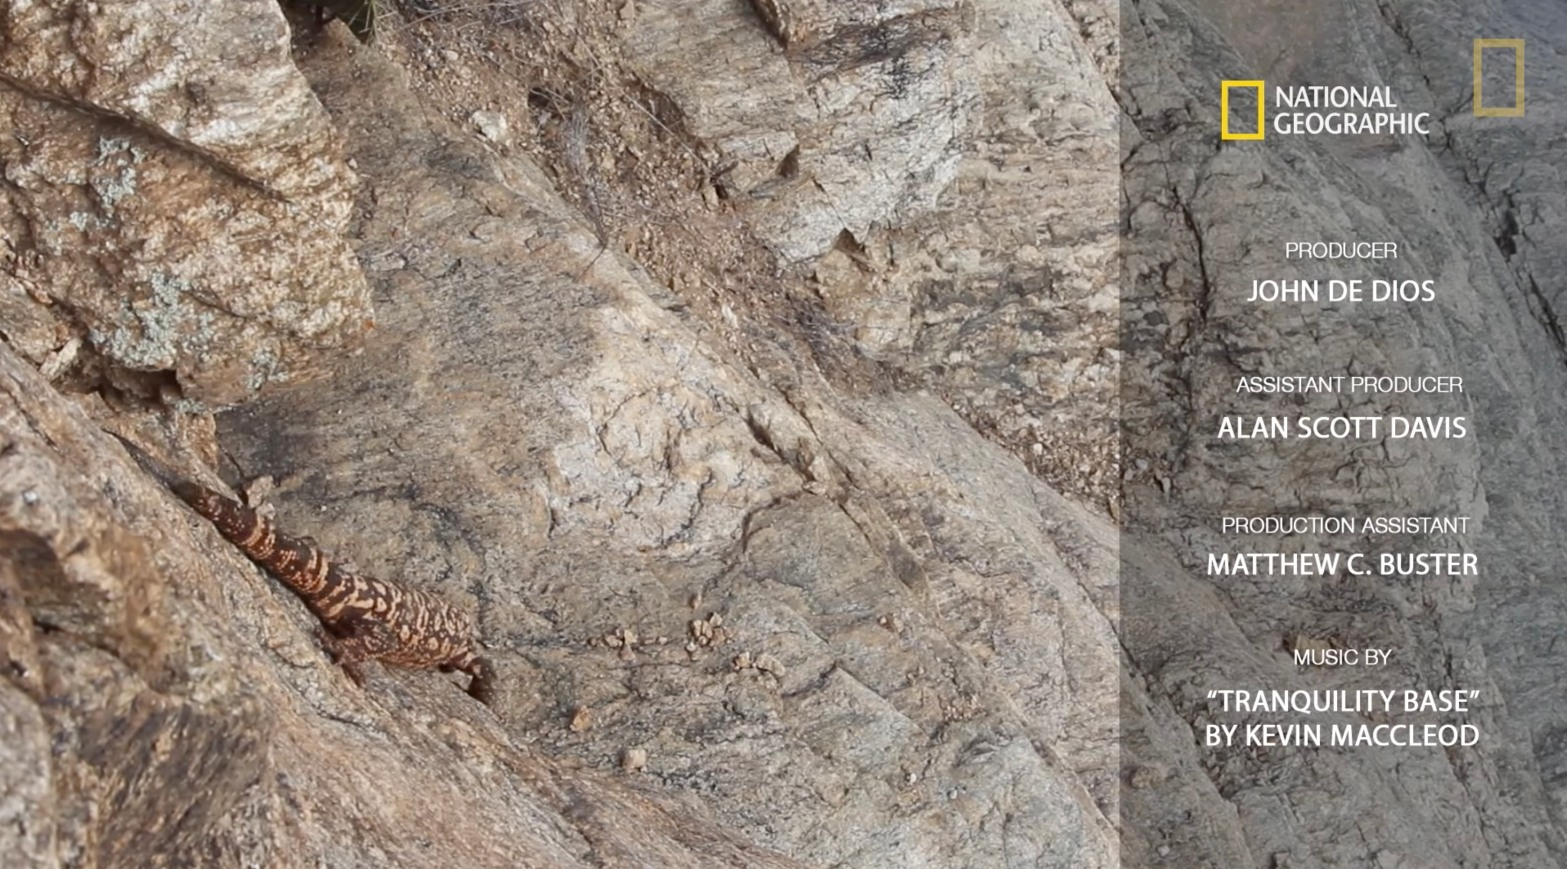 An orange and black Gila monster scales the wall in Saguaro National Park in Tucson Arizona as National Geographic credits appear